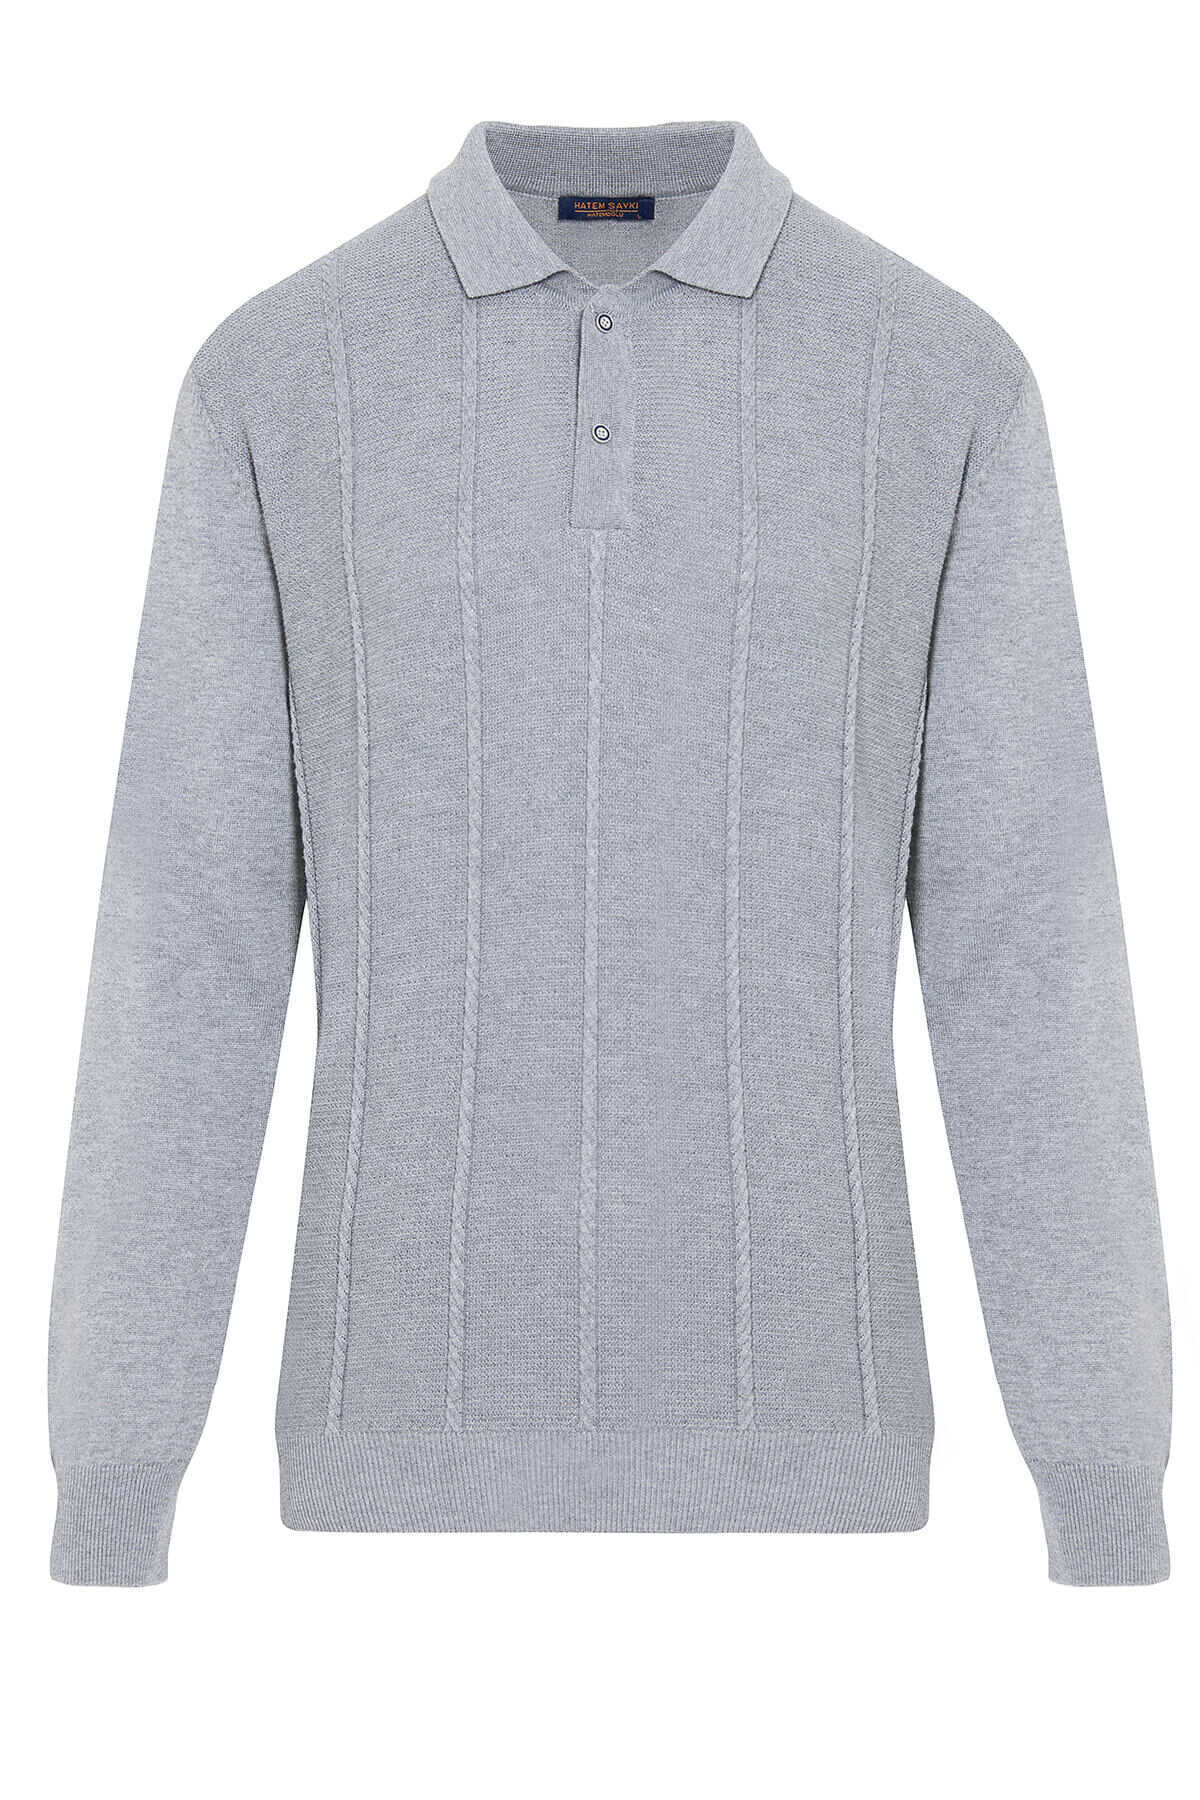 - Grey Polo Neck Buttoned Sweater